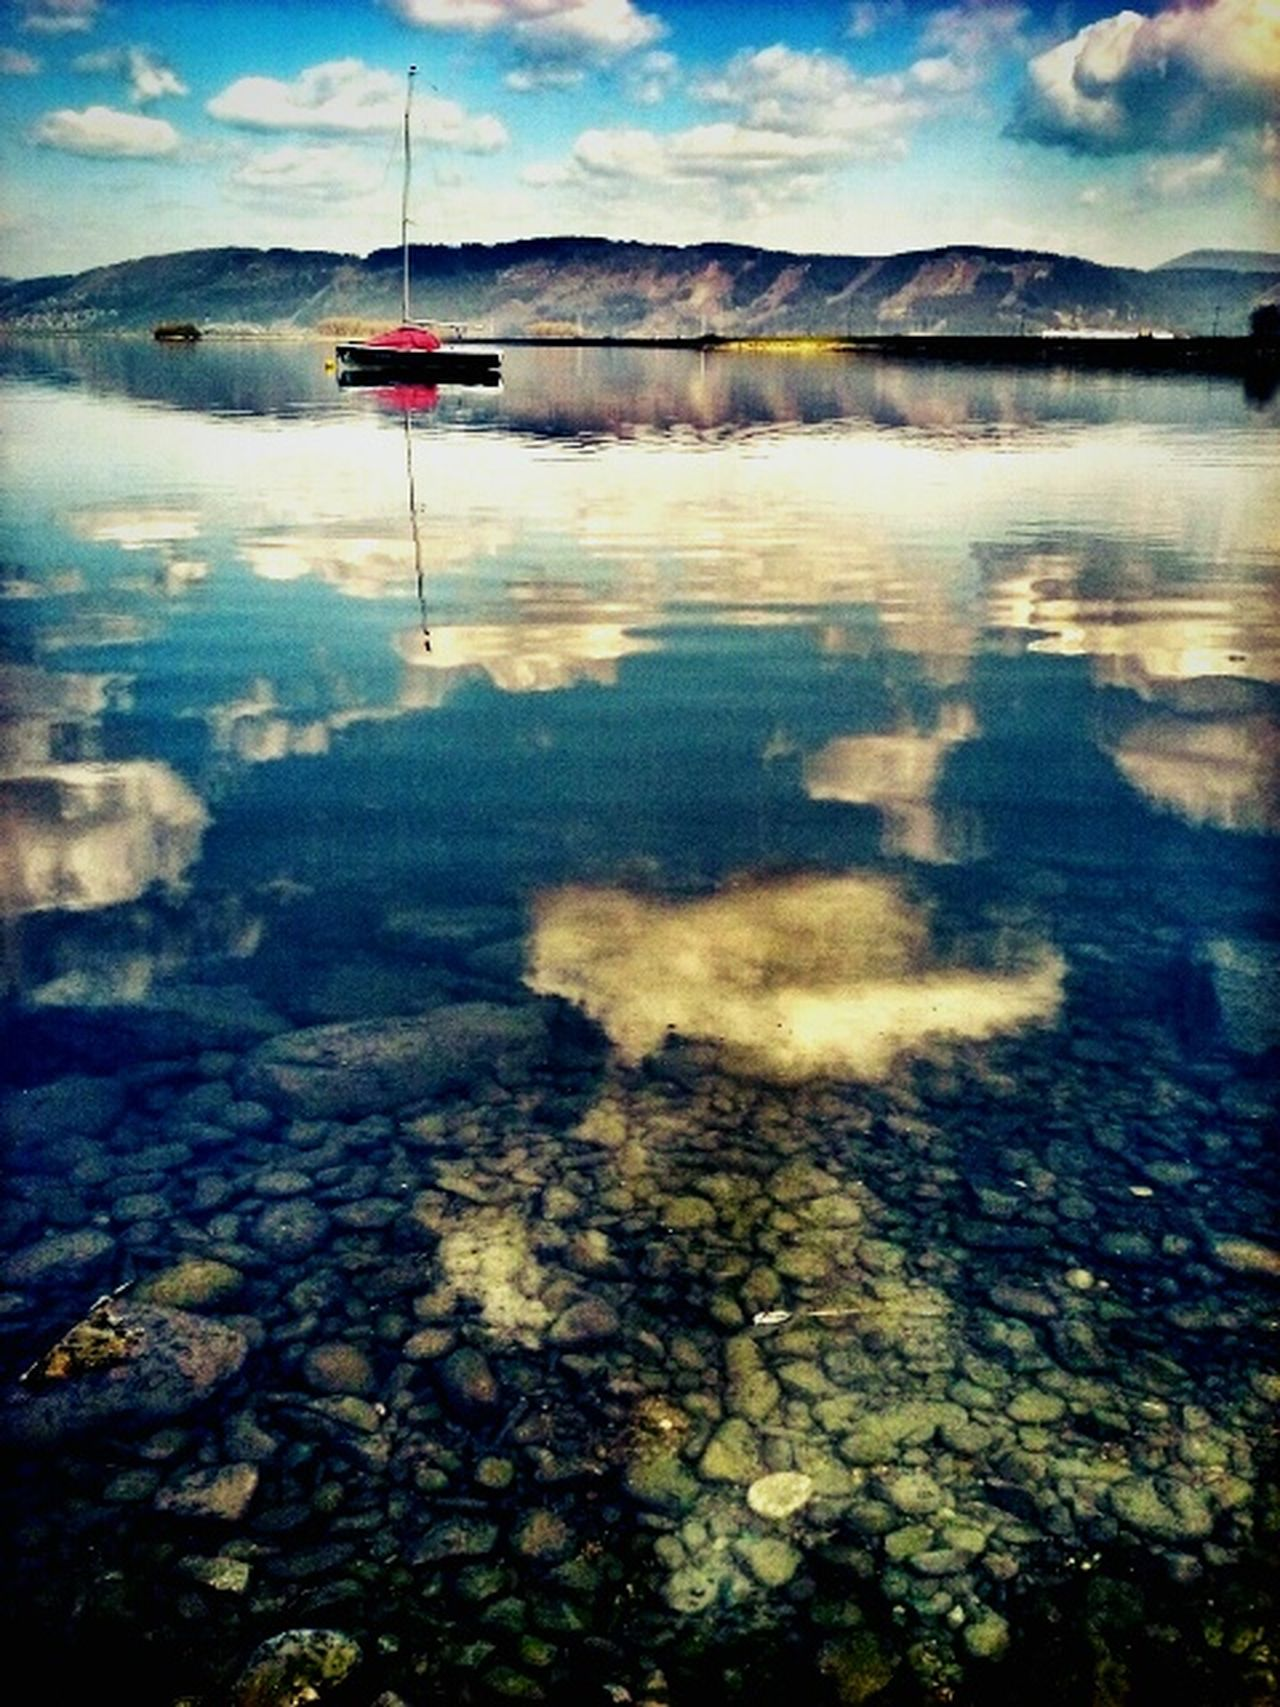 Riverscape Landscape Landscape Reflecting In Mirror Ship Calm Water Mountains Sky And Clouds